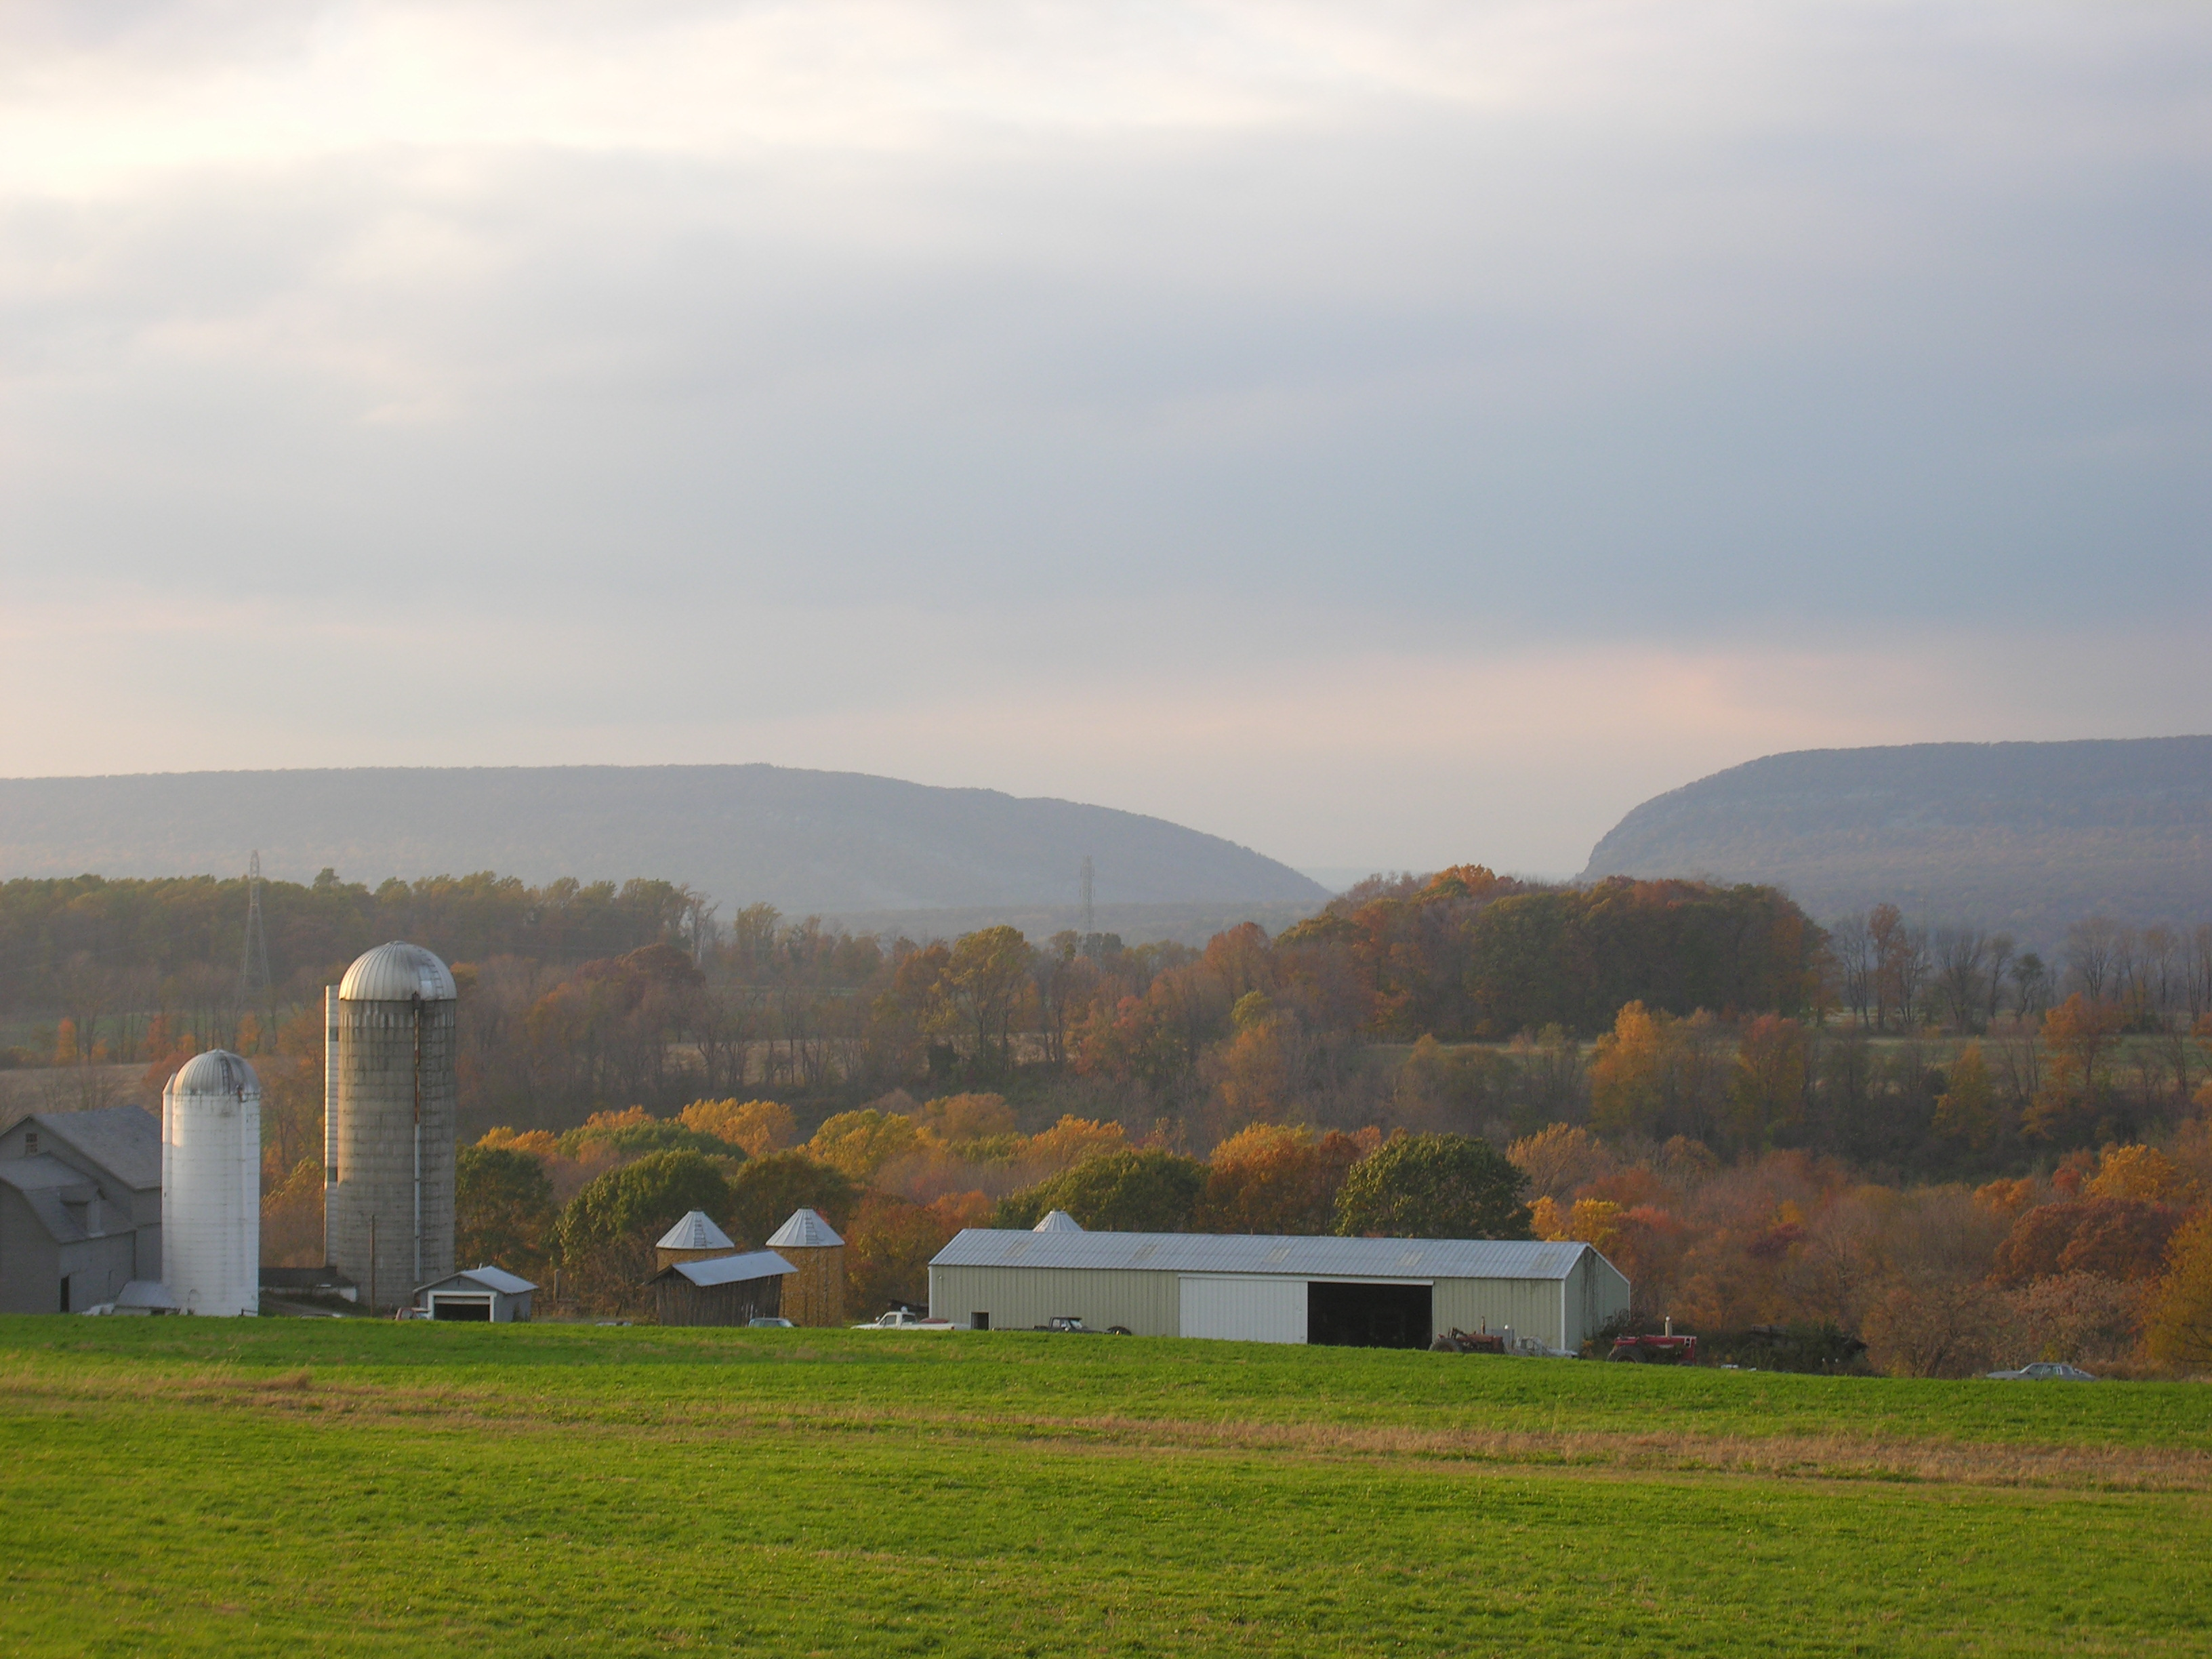 delaware water gap online dating Antoine dutot museum and gallery, delaware ranked no3 on tripadvisor among 4 attractions in delaware water gap land deeds and documents dating.